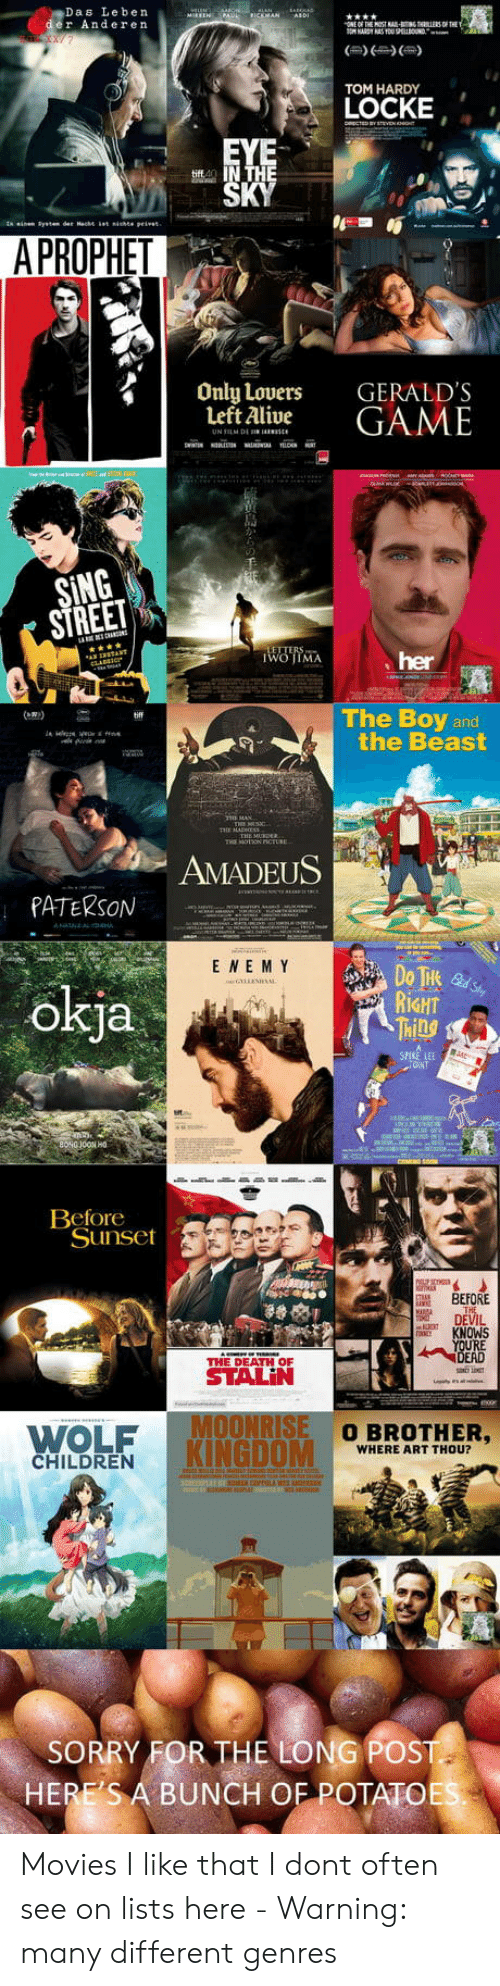 potatoe: Das Leben  er Anderen  TOM HARDY  LOCKE  A PROPHET  Only Lovers  Left Alive  GERALD'S  GAME  SING  STREE  her  The Boy and  the Beast  AMADEUS  PATERSON  E NE M Y  okja  RİGHT  Ml  CANT  Beforeot  Sunset  BEFORE  DEVIL  KNOWS  RE  THE DEATH OF  WOLF  KINGDOM  O BROTHER,  WHERE ART THOU?  CHILDREN  SORRY FOR THE LONG POST  HERE'S A BUNCH OF POTATOE Movies I like that I dont often see on lists here - Warning: many different genres